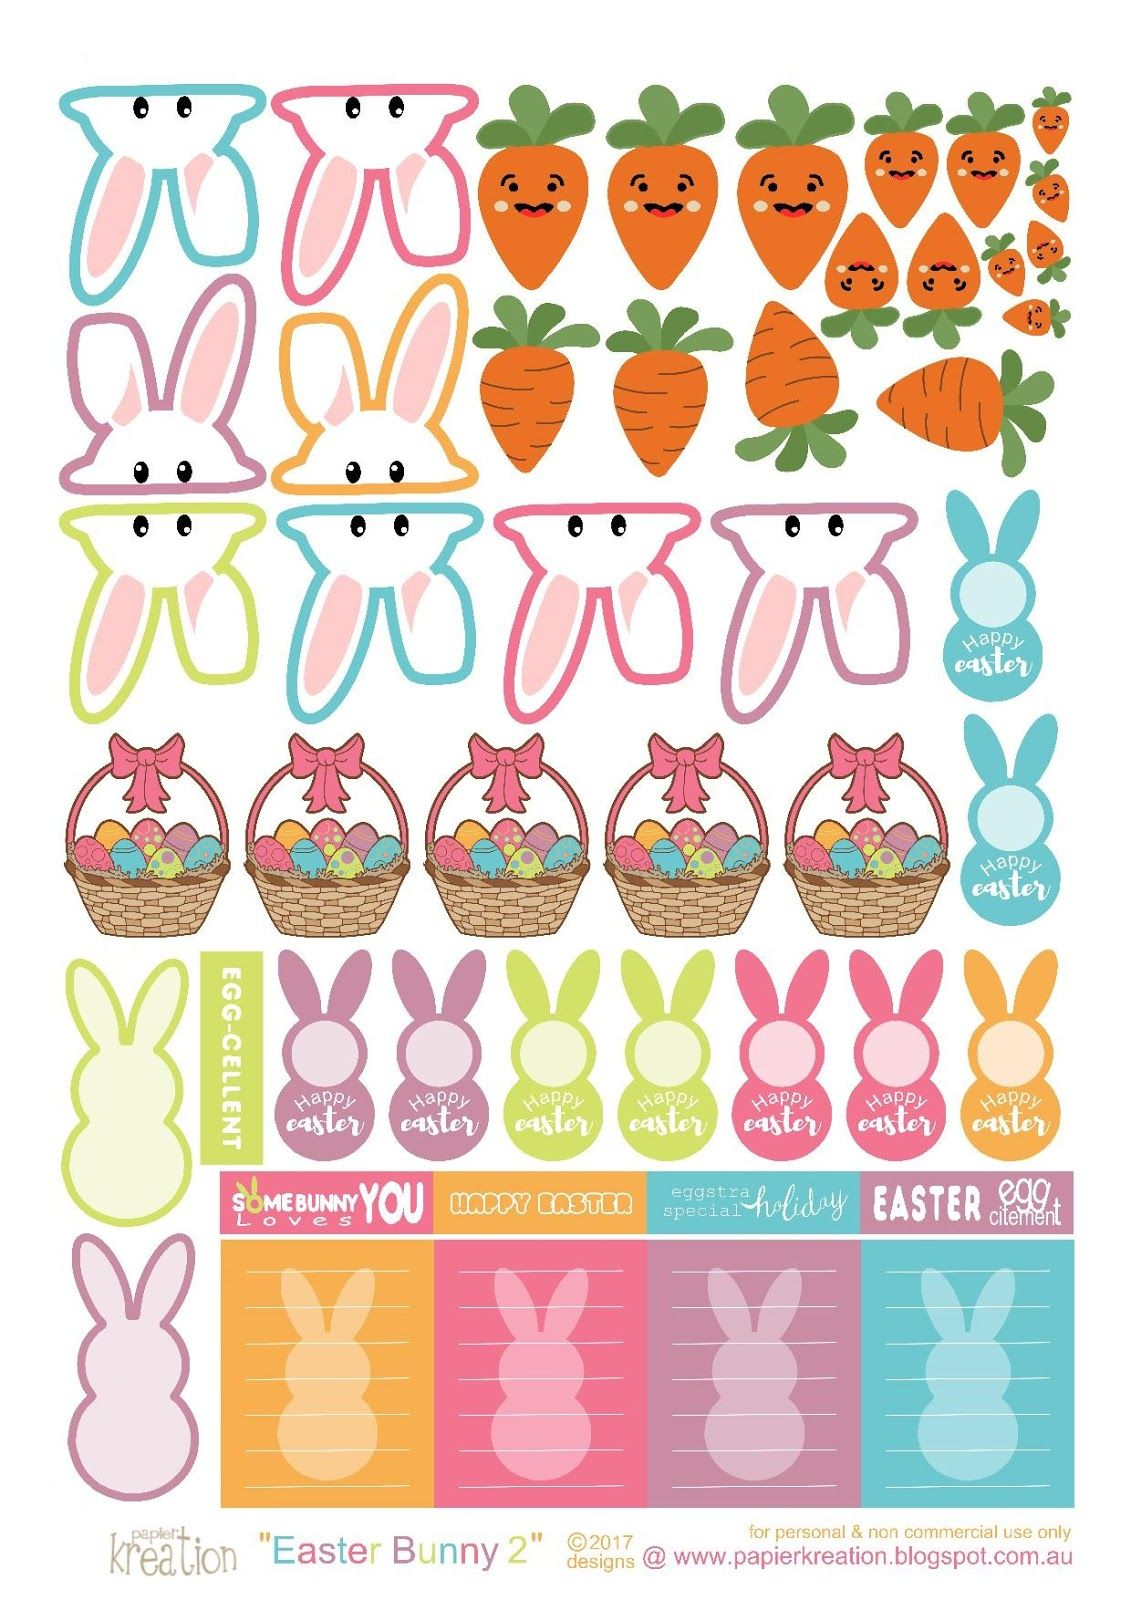 Free Printable Easter Planner Stickers Winter Planner Stickers Free Planner Stickers Happy Planner Printables